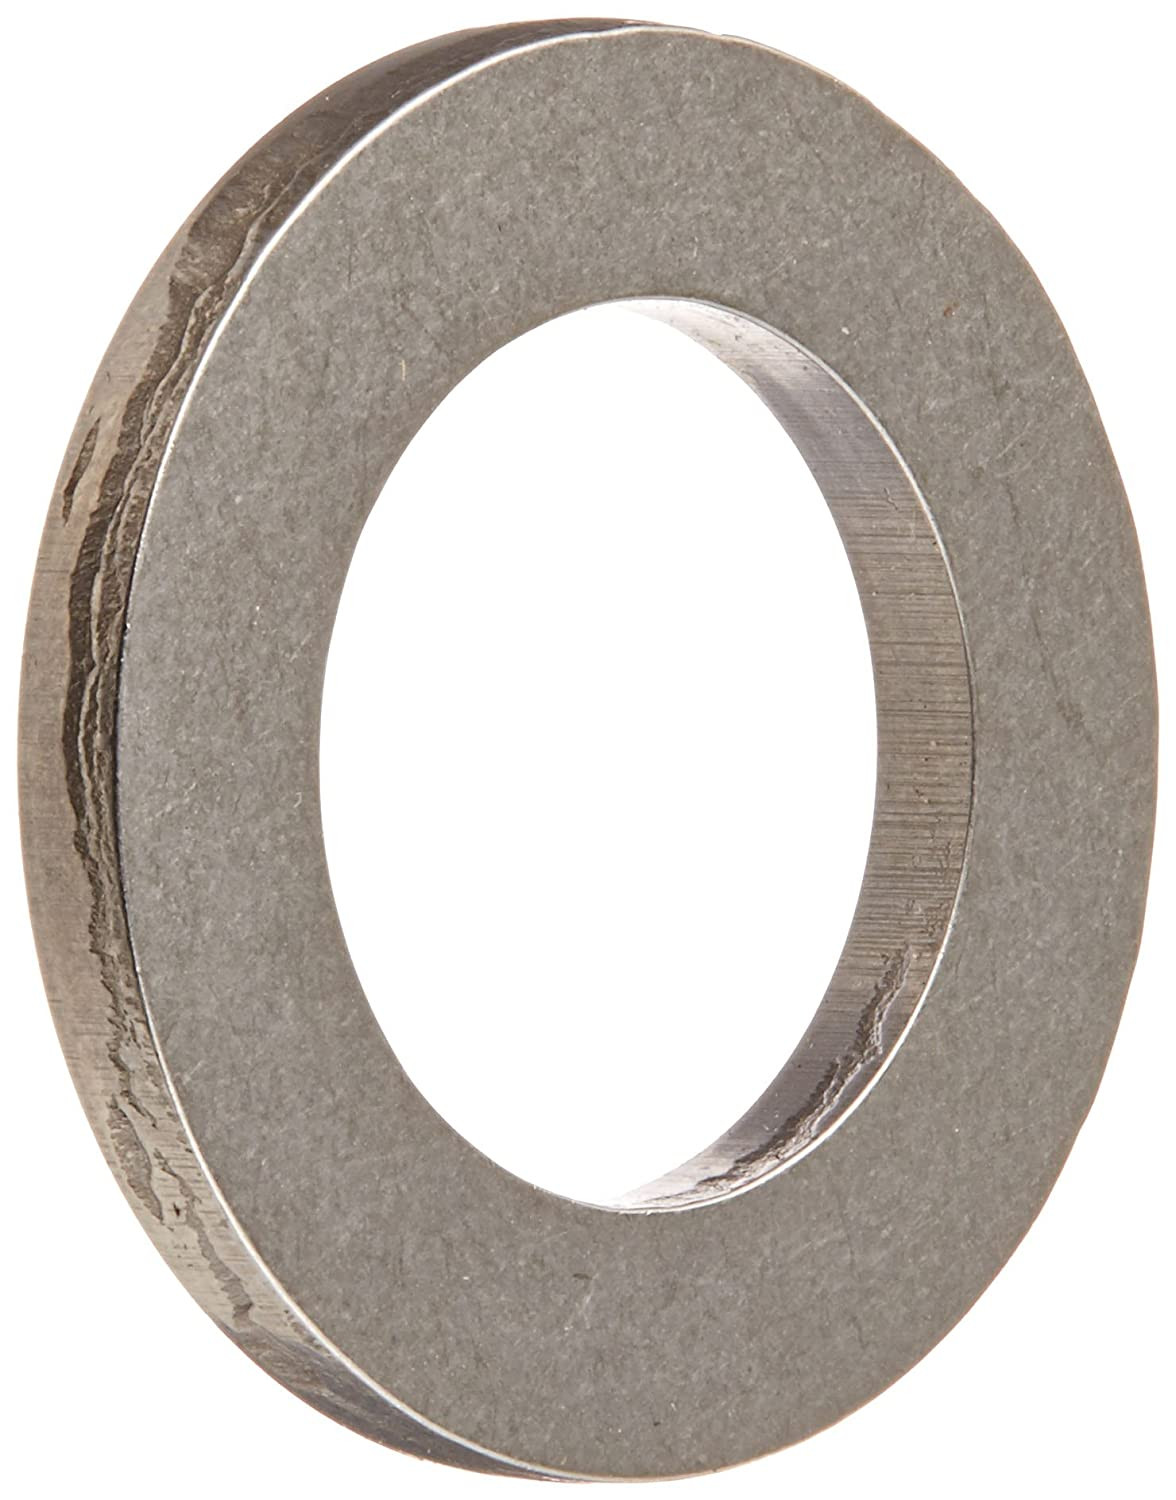 Koyo shop TRD-1220 Thrust Roller Bearing Washer Cash special price Inch 4 1-1 ID 3 4